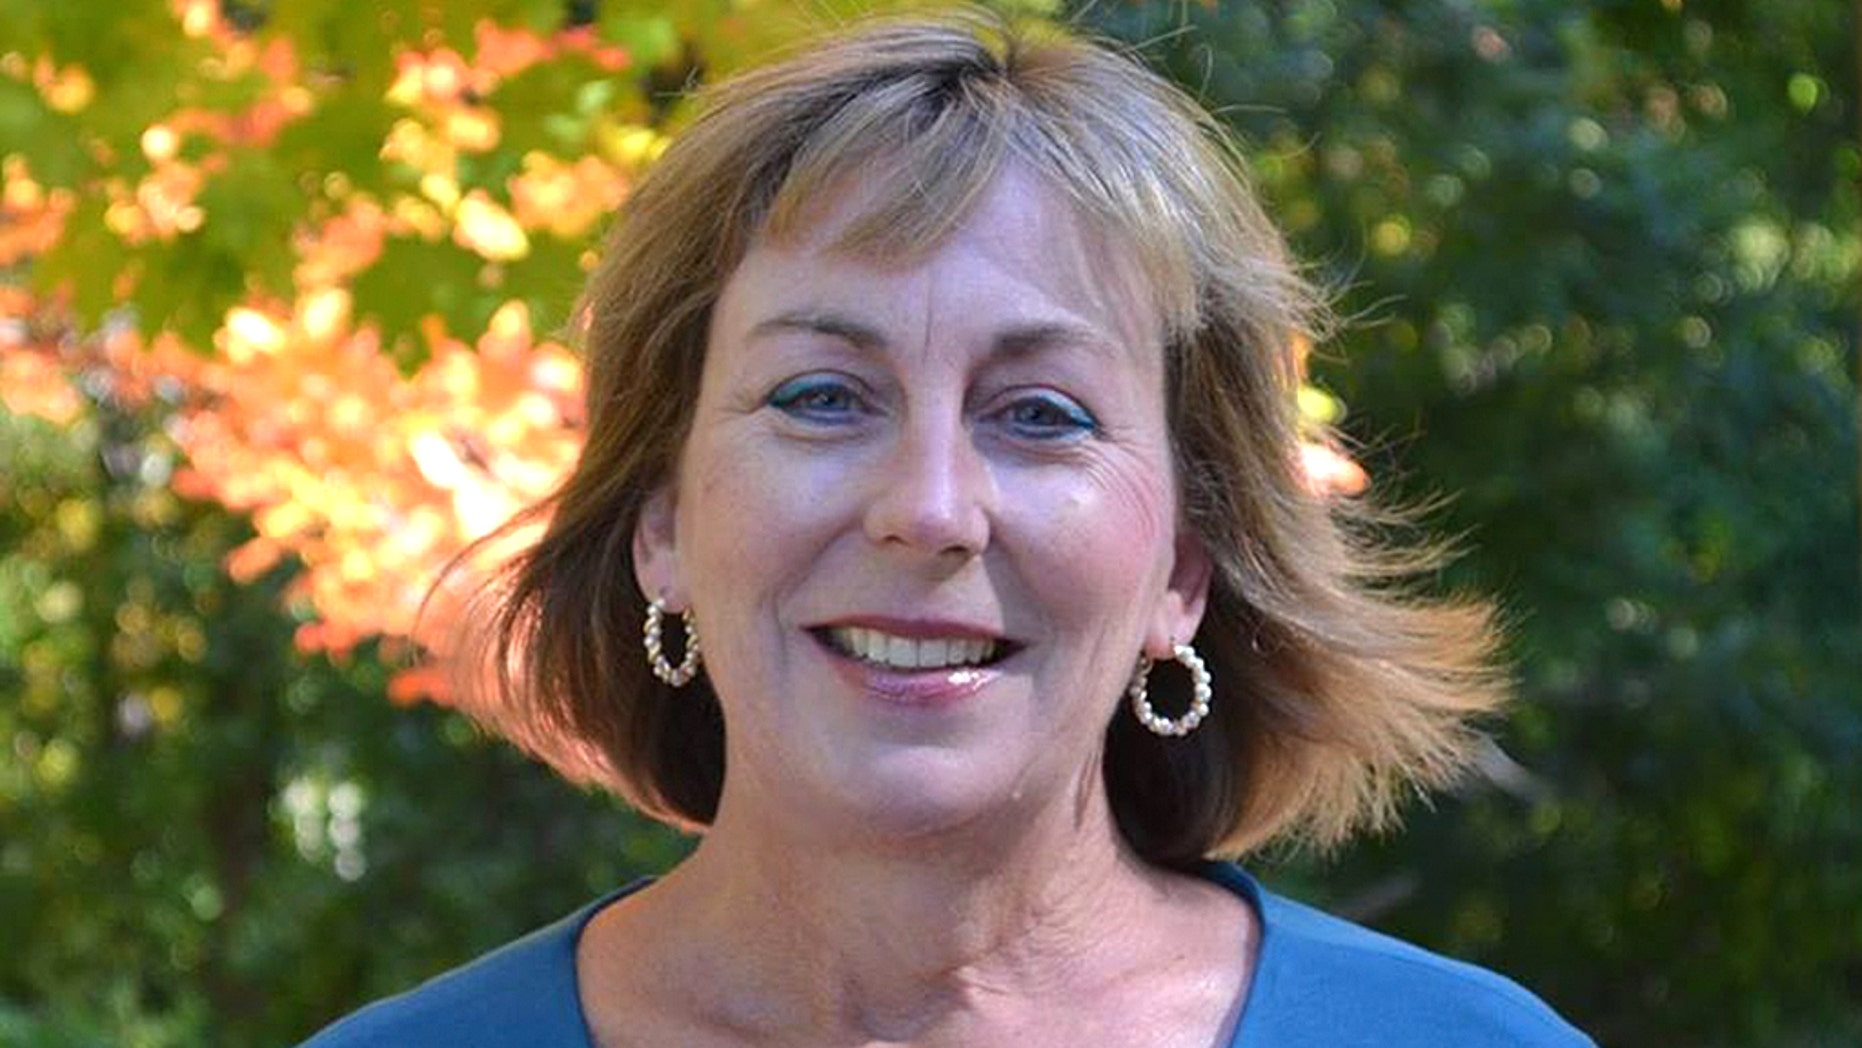 Barbara L'Italien, a Democrat running for Congress in Massachusetts, said if she's elected, she'd like to start impeachment proceedings for Supreme Court Justice Clarence Thomas. She has a released a detailed platform for how she would combat sexual misconduct if elected.